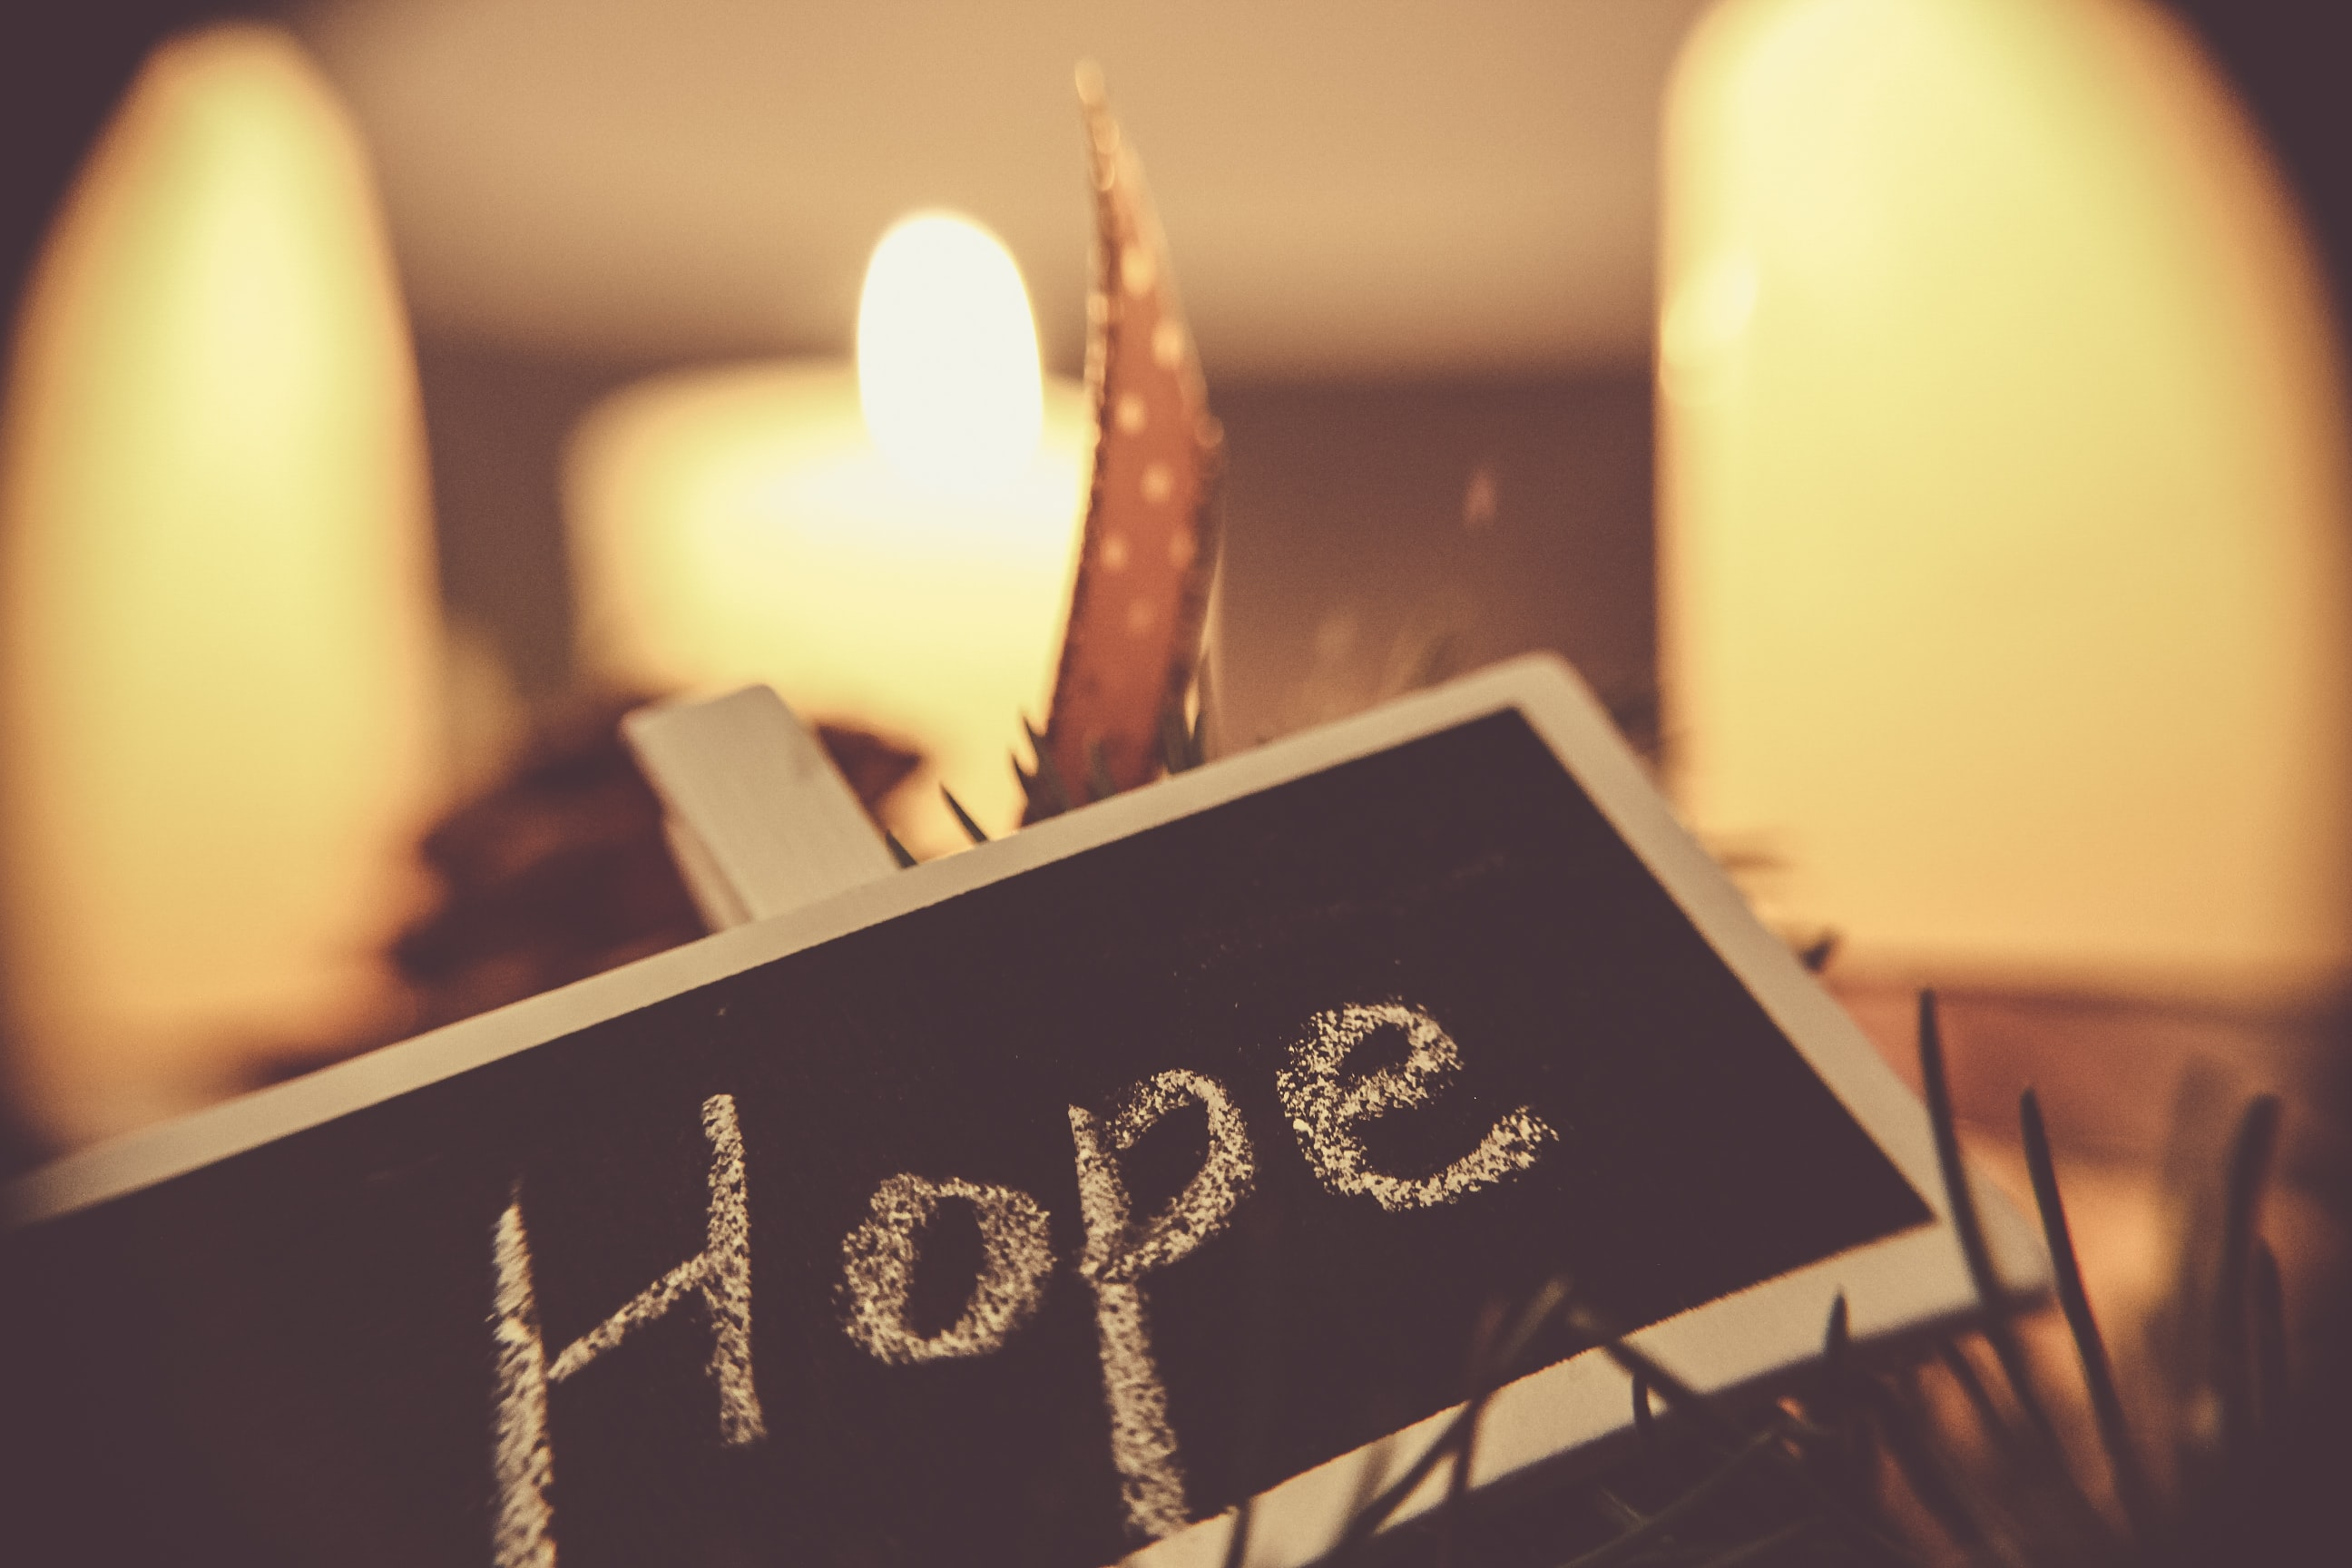 Hope, written in white chalk on a black chalkboard in front of candles.